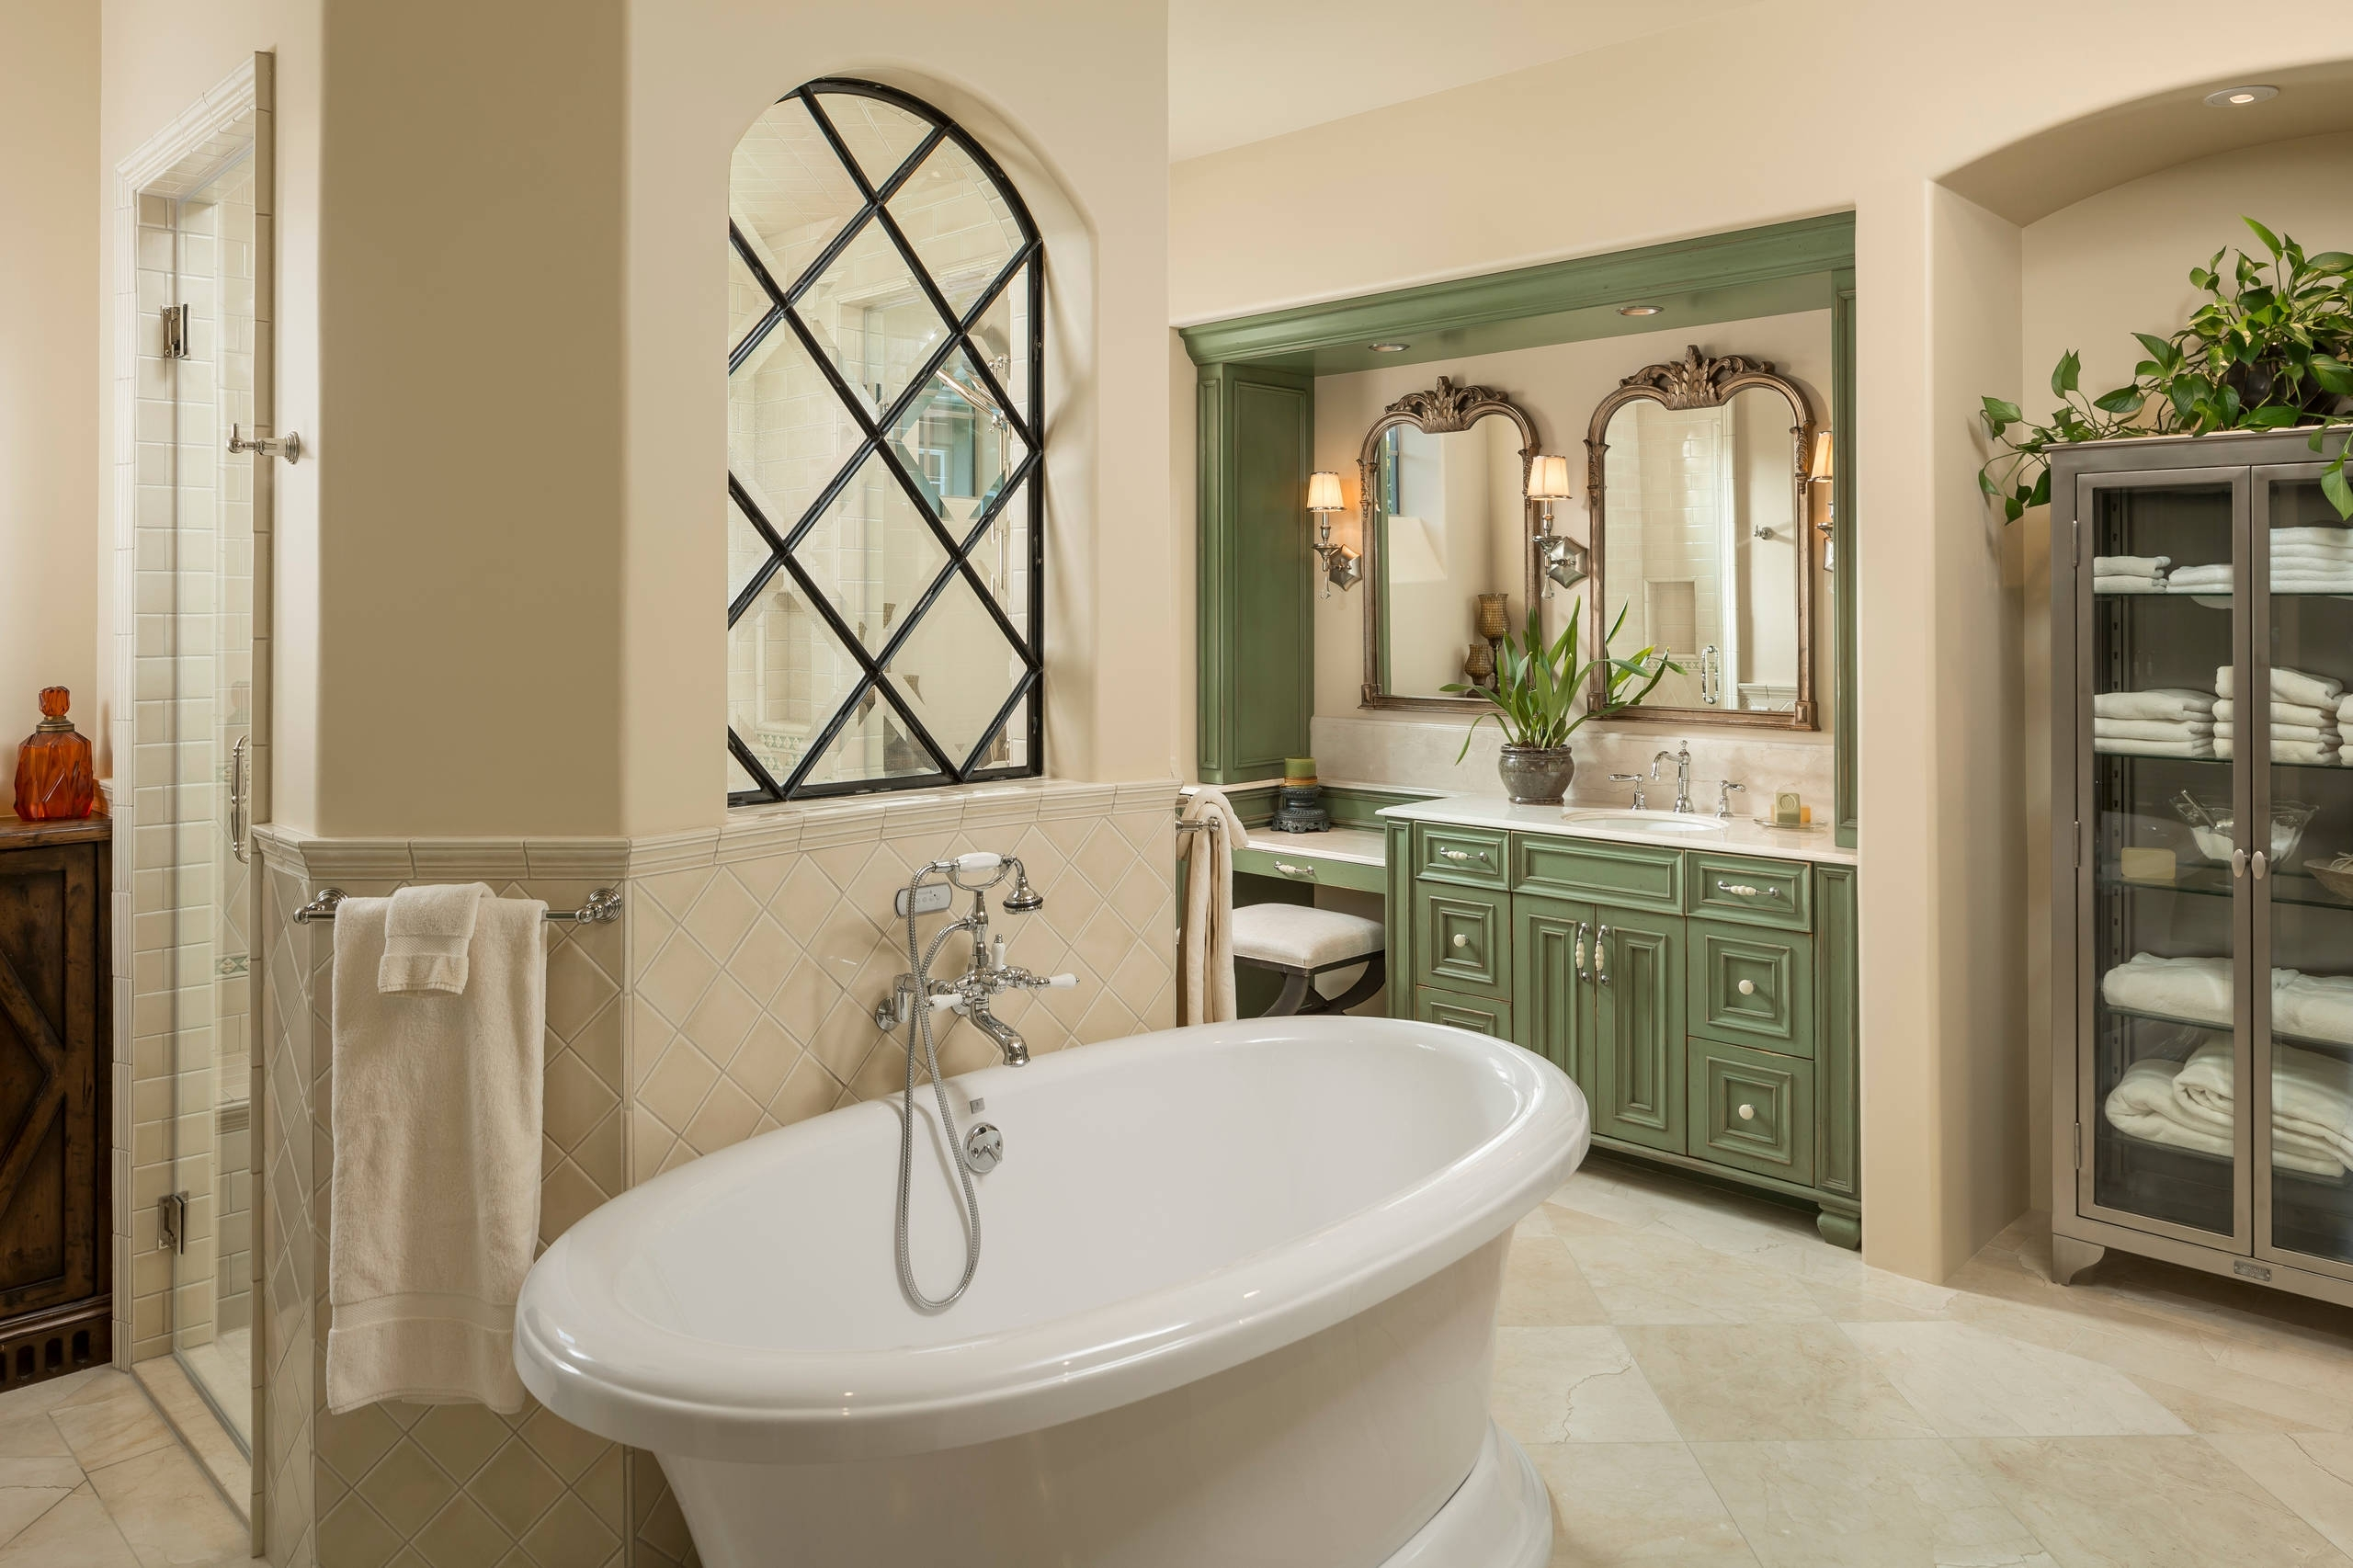 75 Beautiful Double Shower With Green Cabinets Pictures Bathroom Design Studio Ipswich